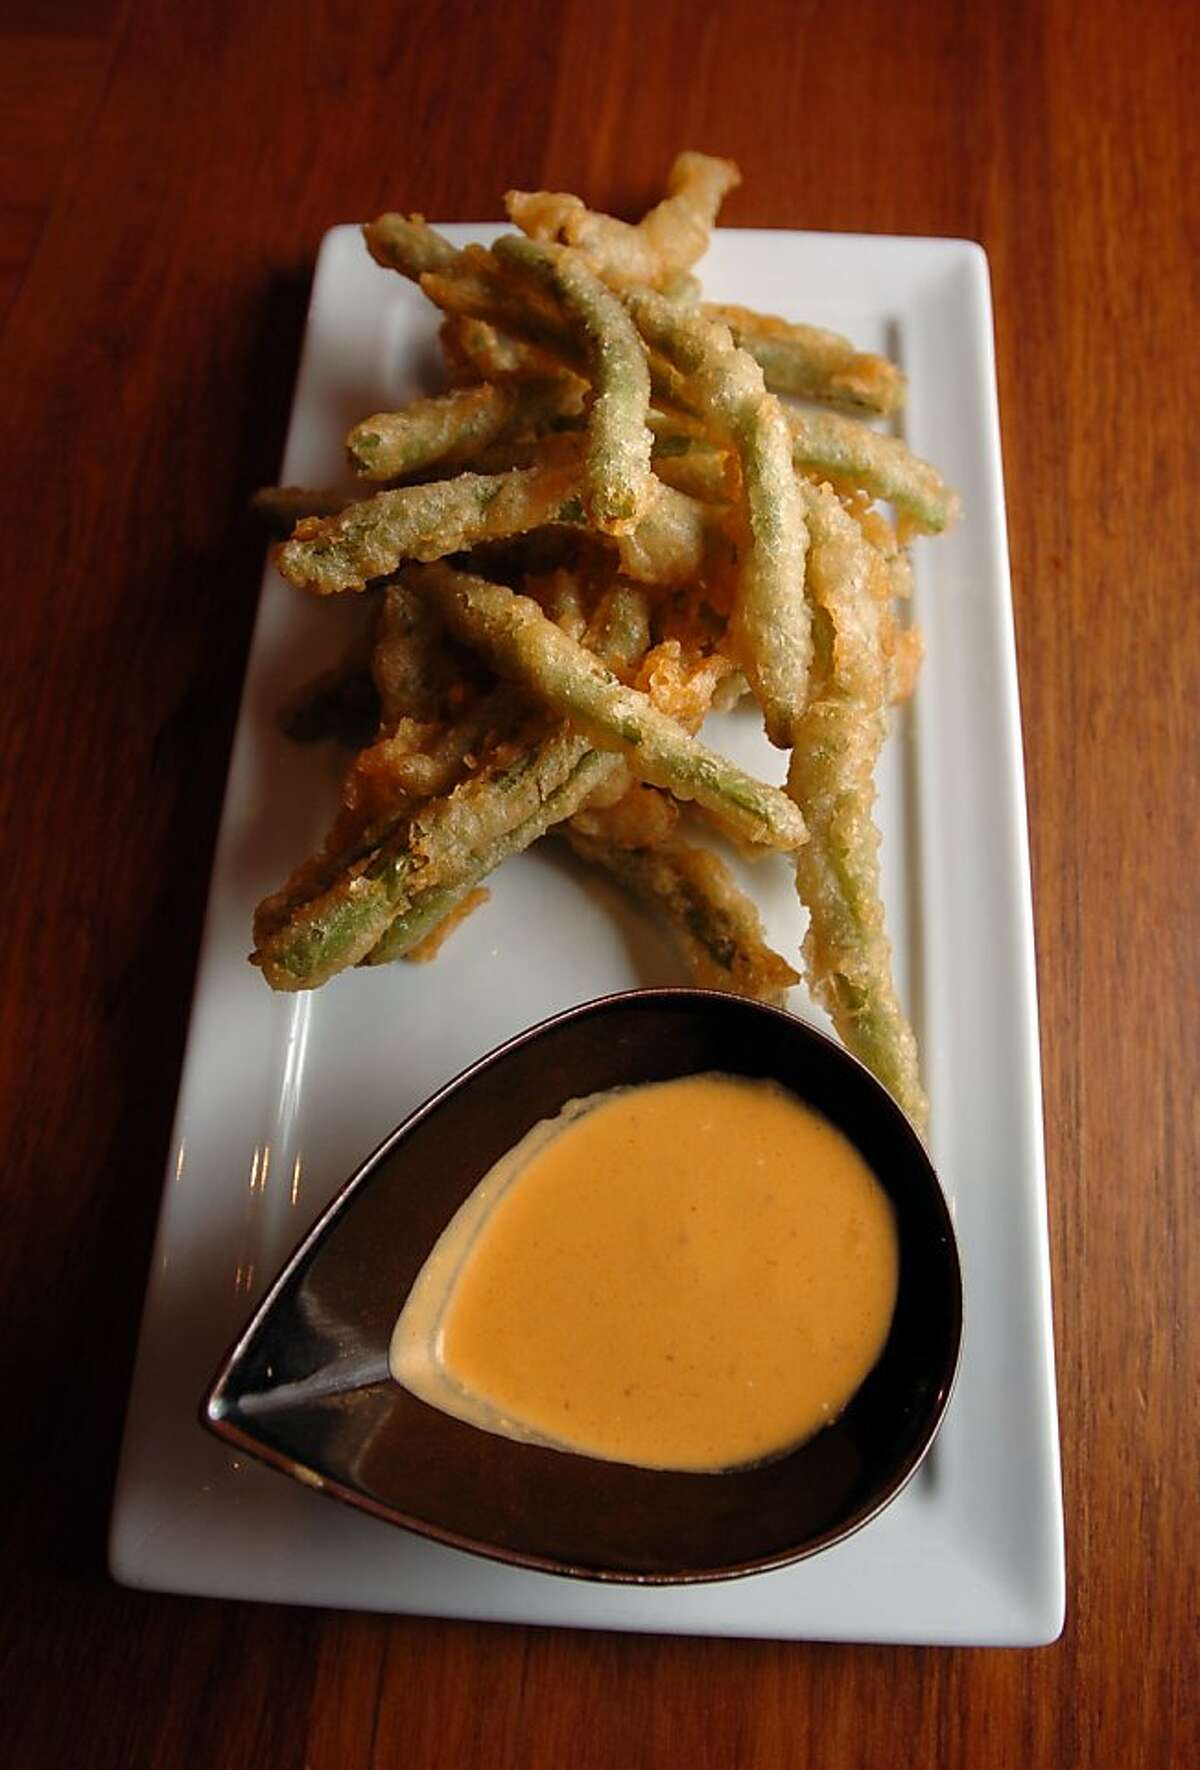 18Coco500_07_JMM.JPG Fried green beans at the Coco500 restaurant. Loretta Keller, one of the top chefs in the city, has transformed her popular Bizou restaurant with a new interior, a new name--Coco500--and a modern menu featuring small plates. Event on 8/31/05 in San Francisco. JAKUB MOSUR / The Chronicle